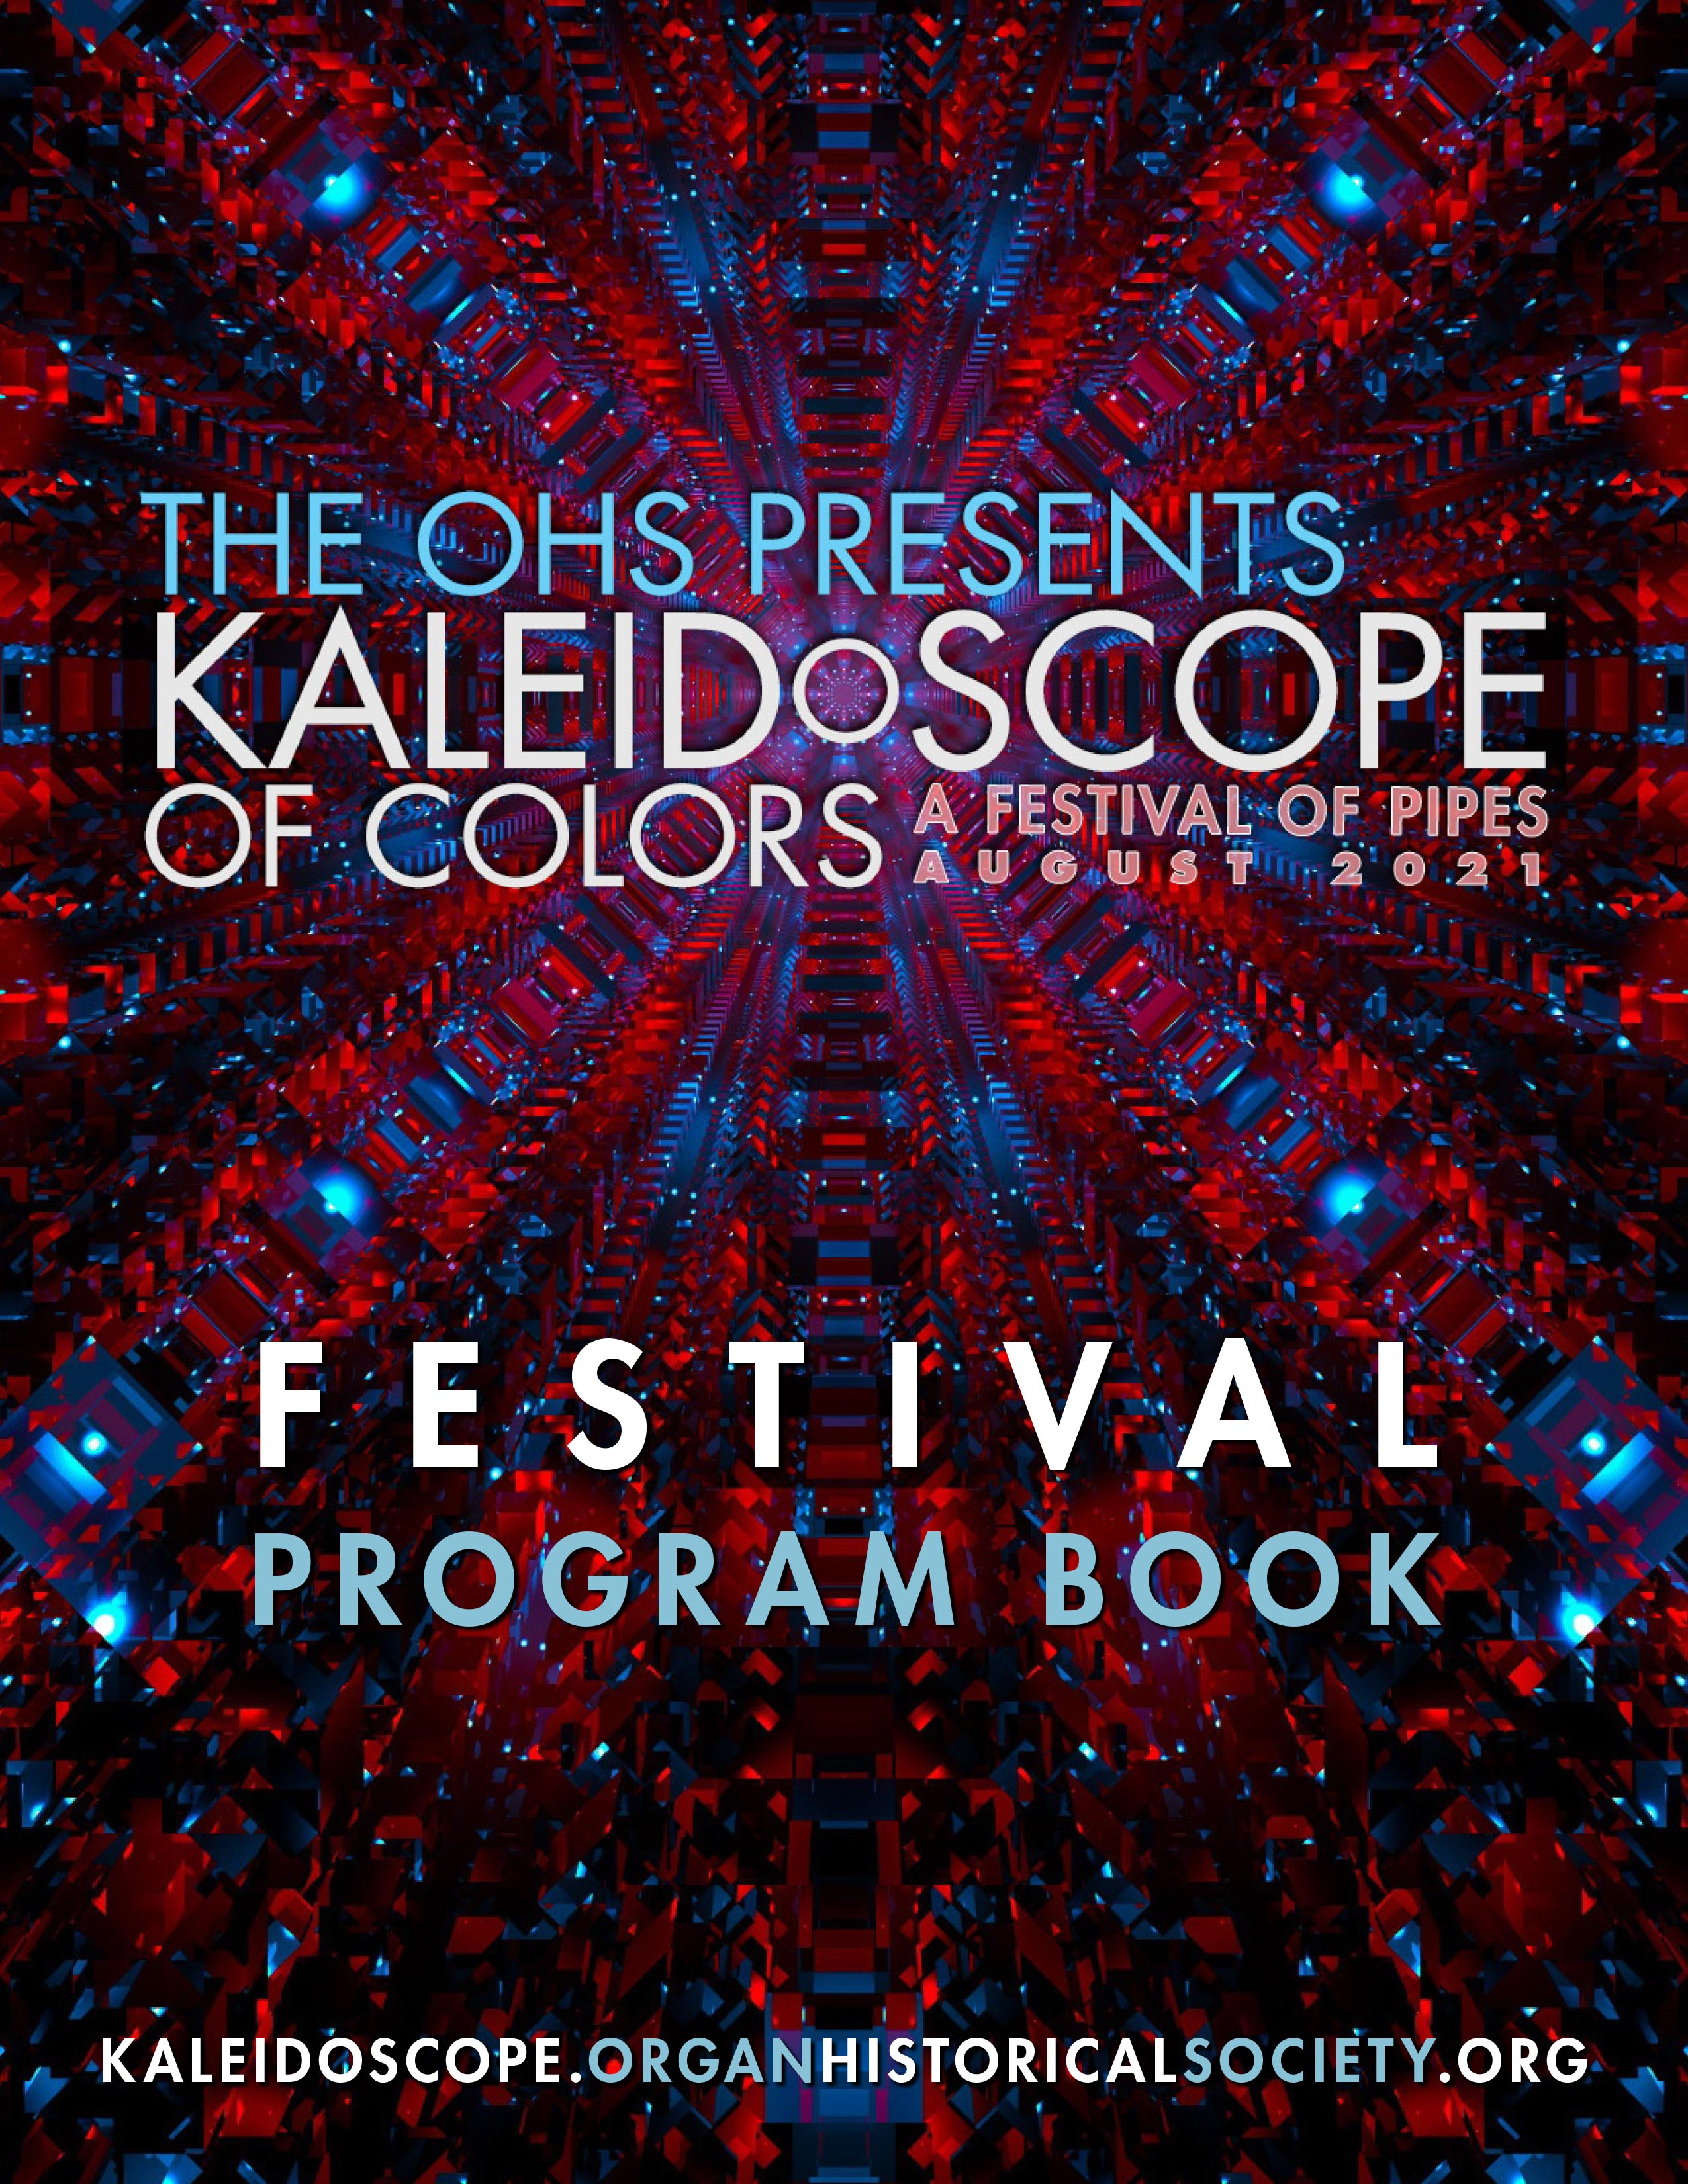 KALEIDOSCOPE OF COLORS - festival program book